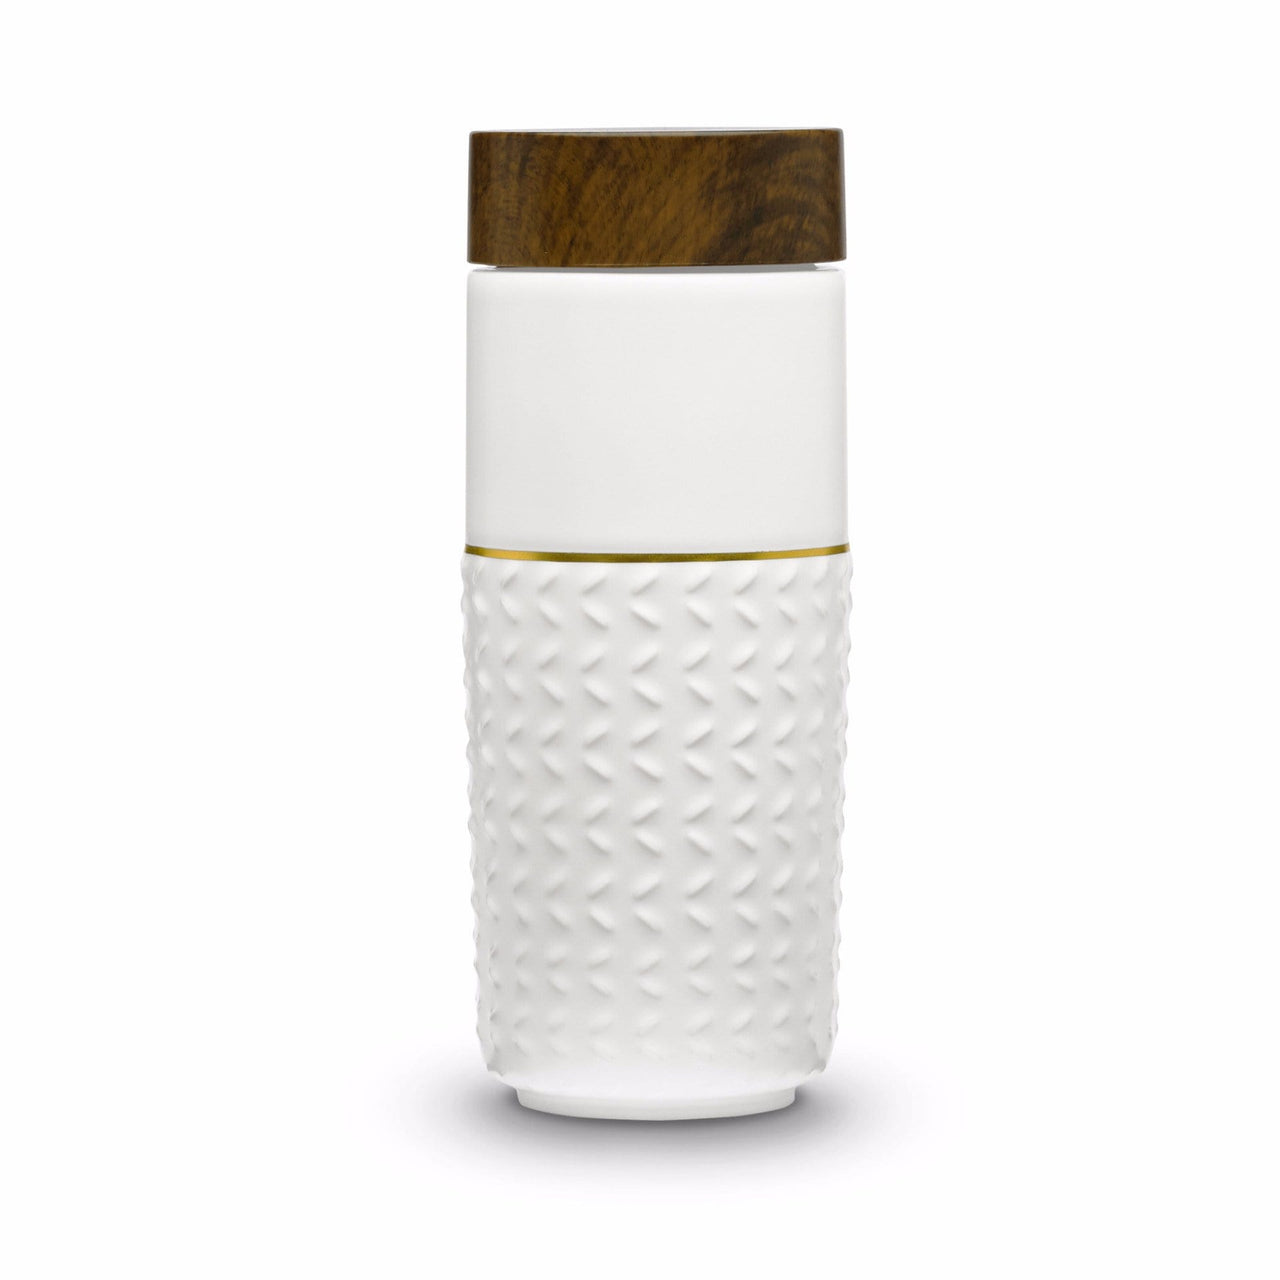 Acera Liven Flasks & Water Bottles White + Golden Line (Hand Painted) One-O-One Free Soaring Gold Line Tumbler